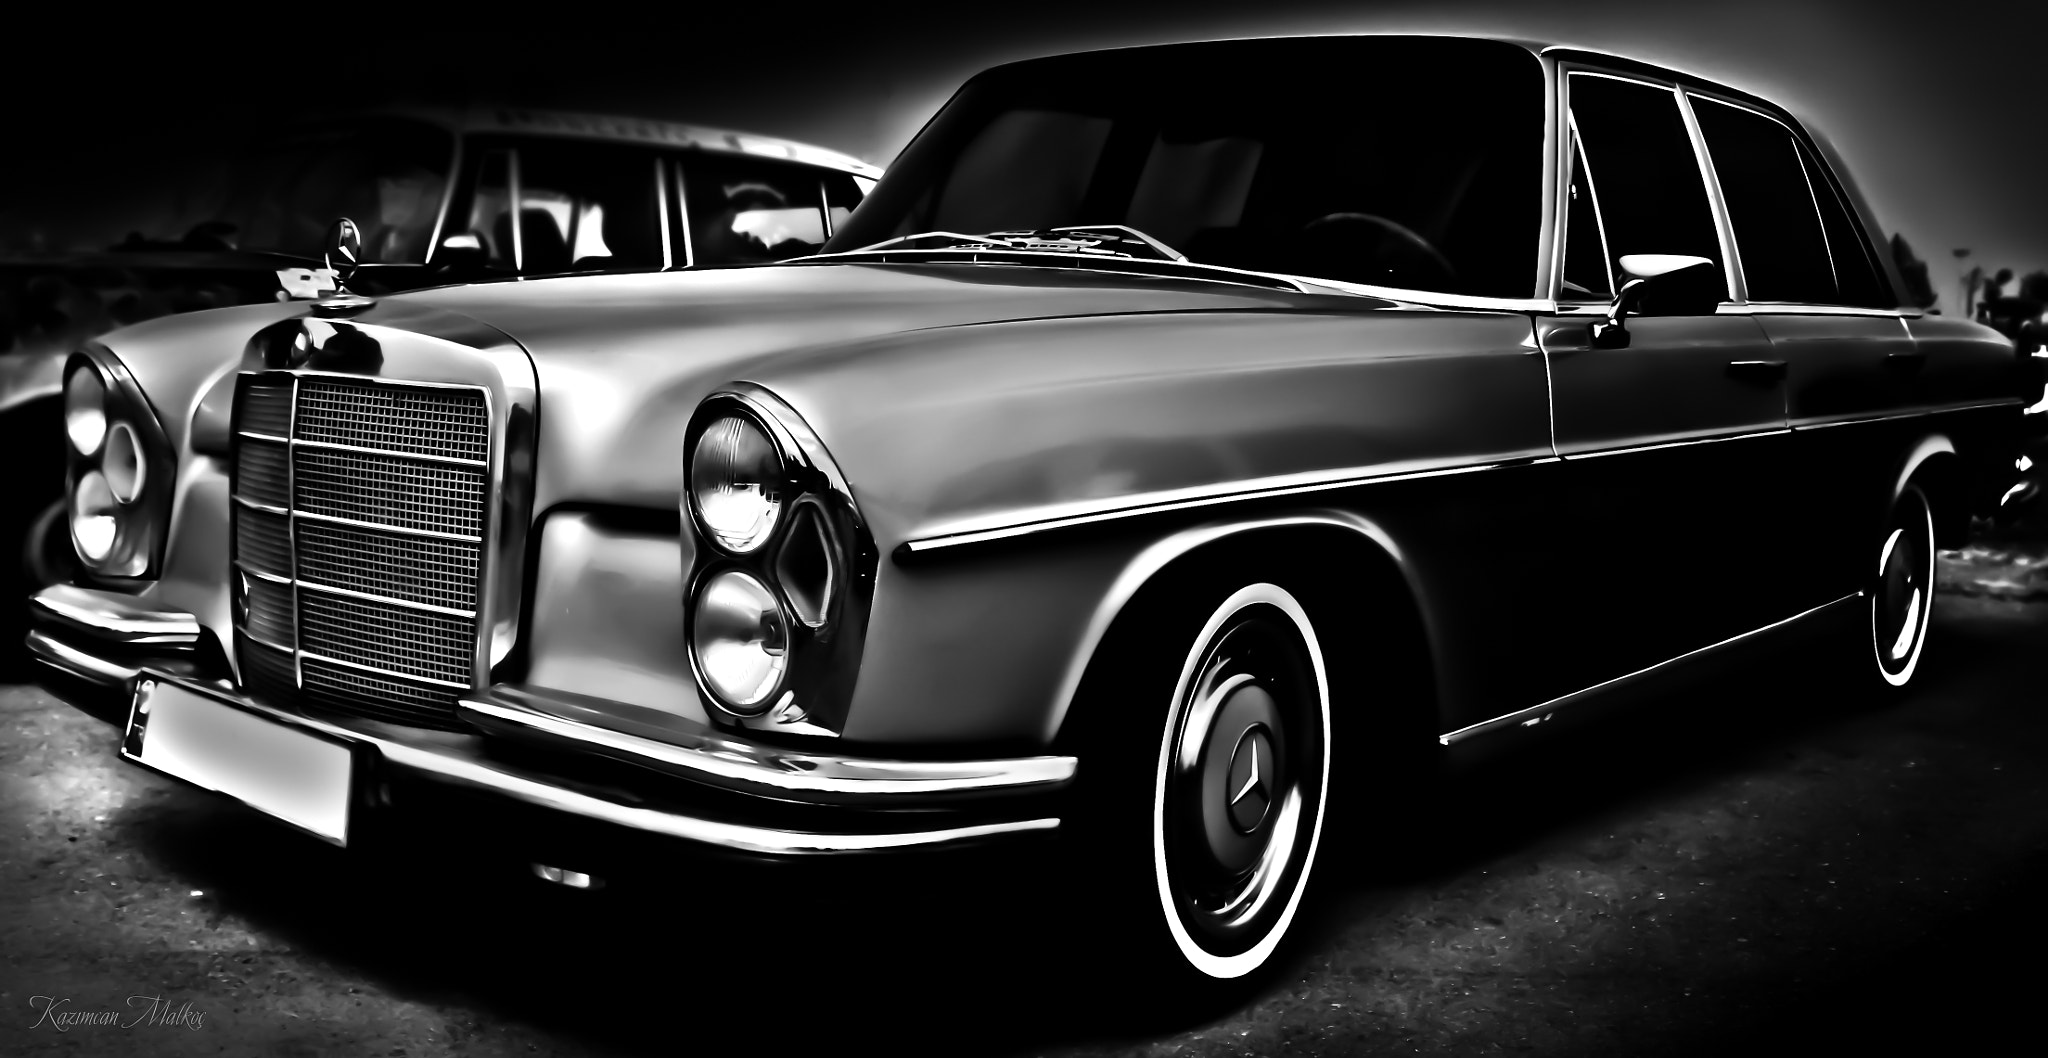 Photograph b&w car by Kazımcan Malkoç on 500px